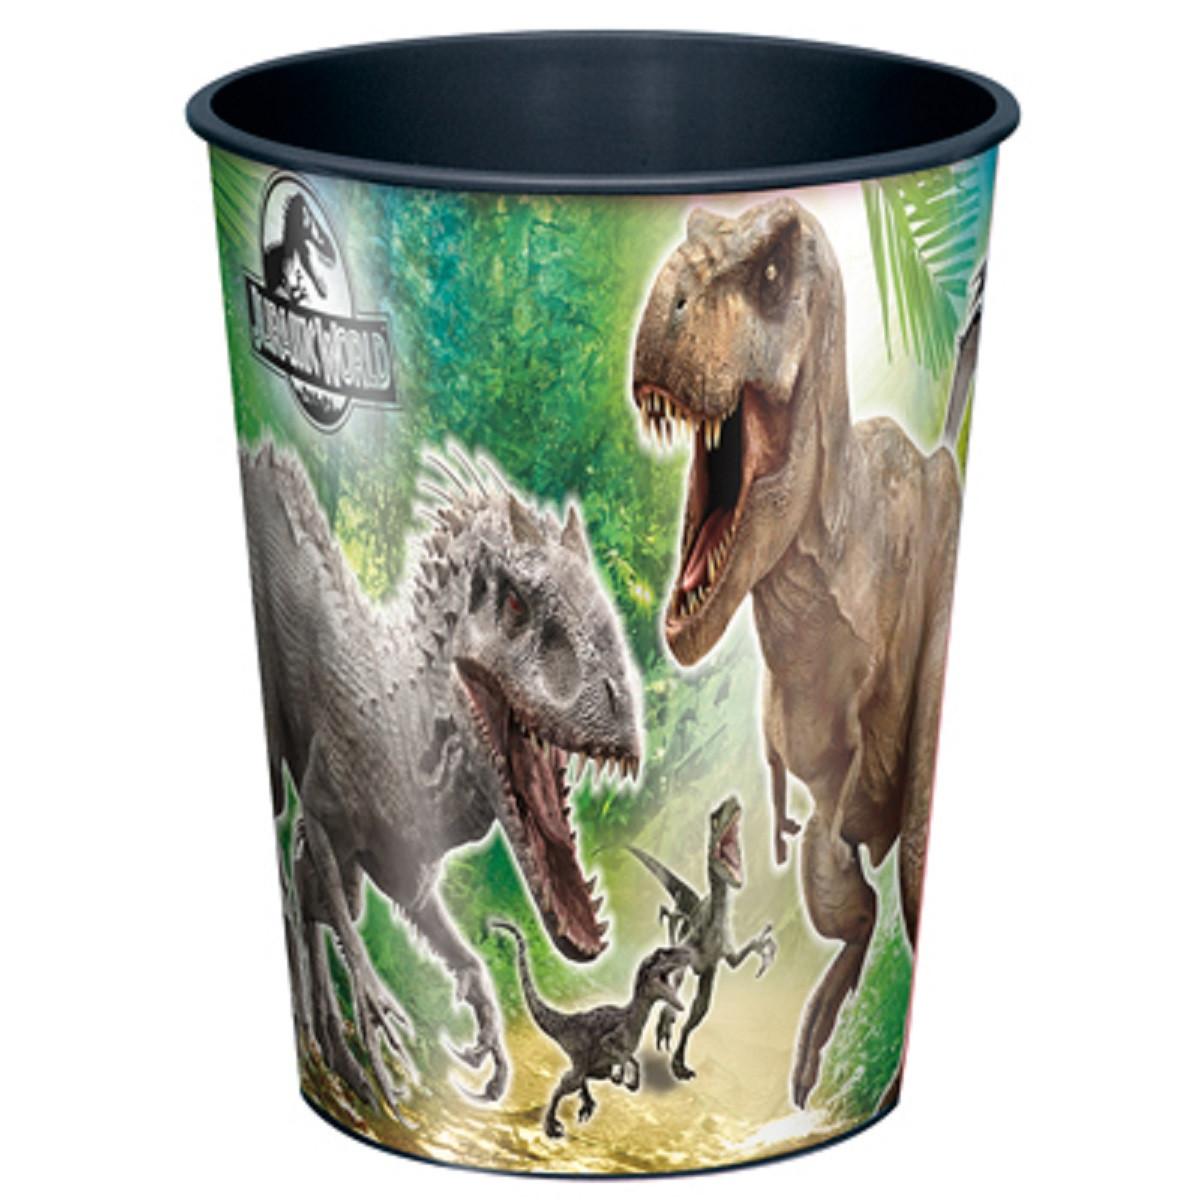 Jurassic World Plastic 16 Ounce Reusable Keepsake Favor Cup (1 Cup)